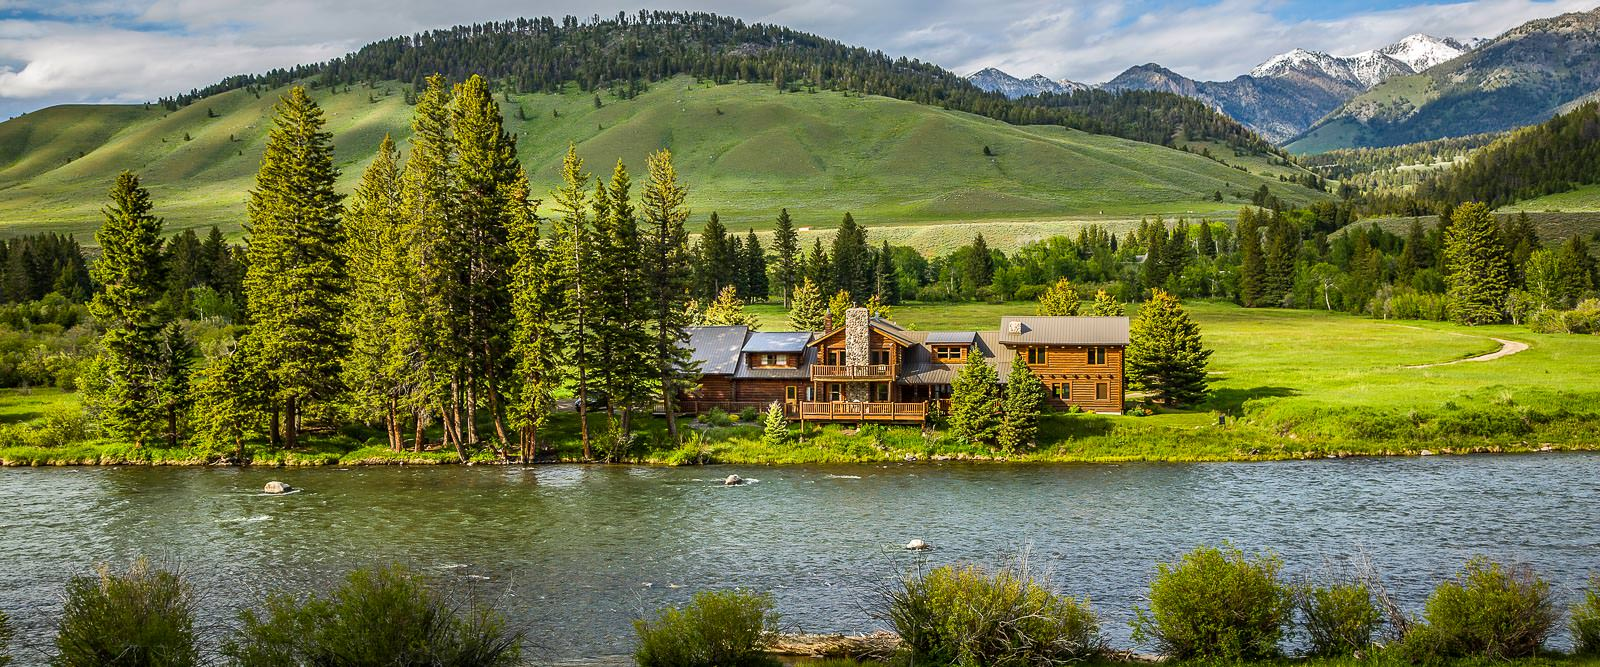 Montana fly fishing trips world class lodges expert guides for Fishing in montana